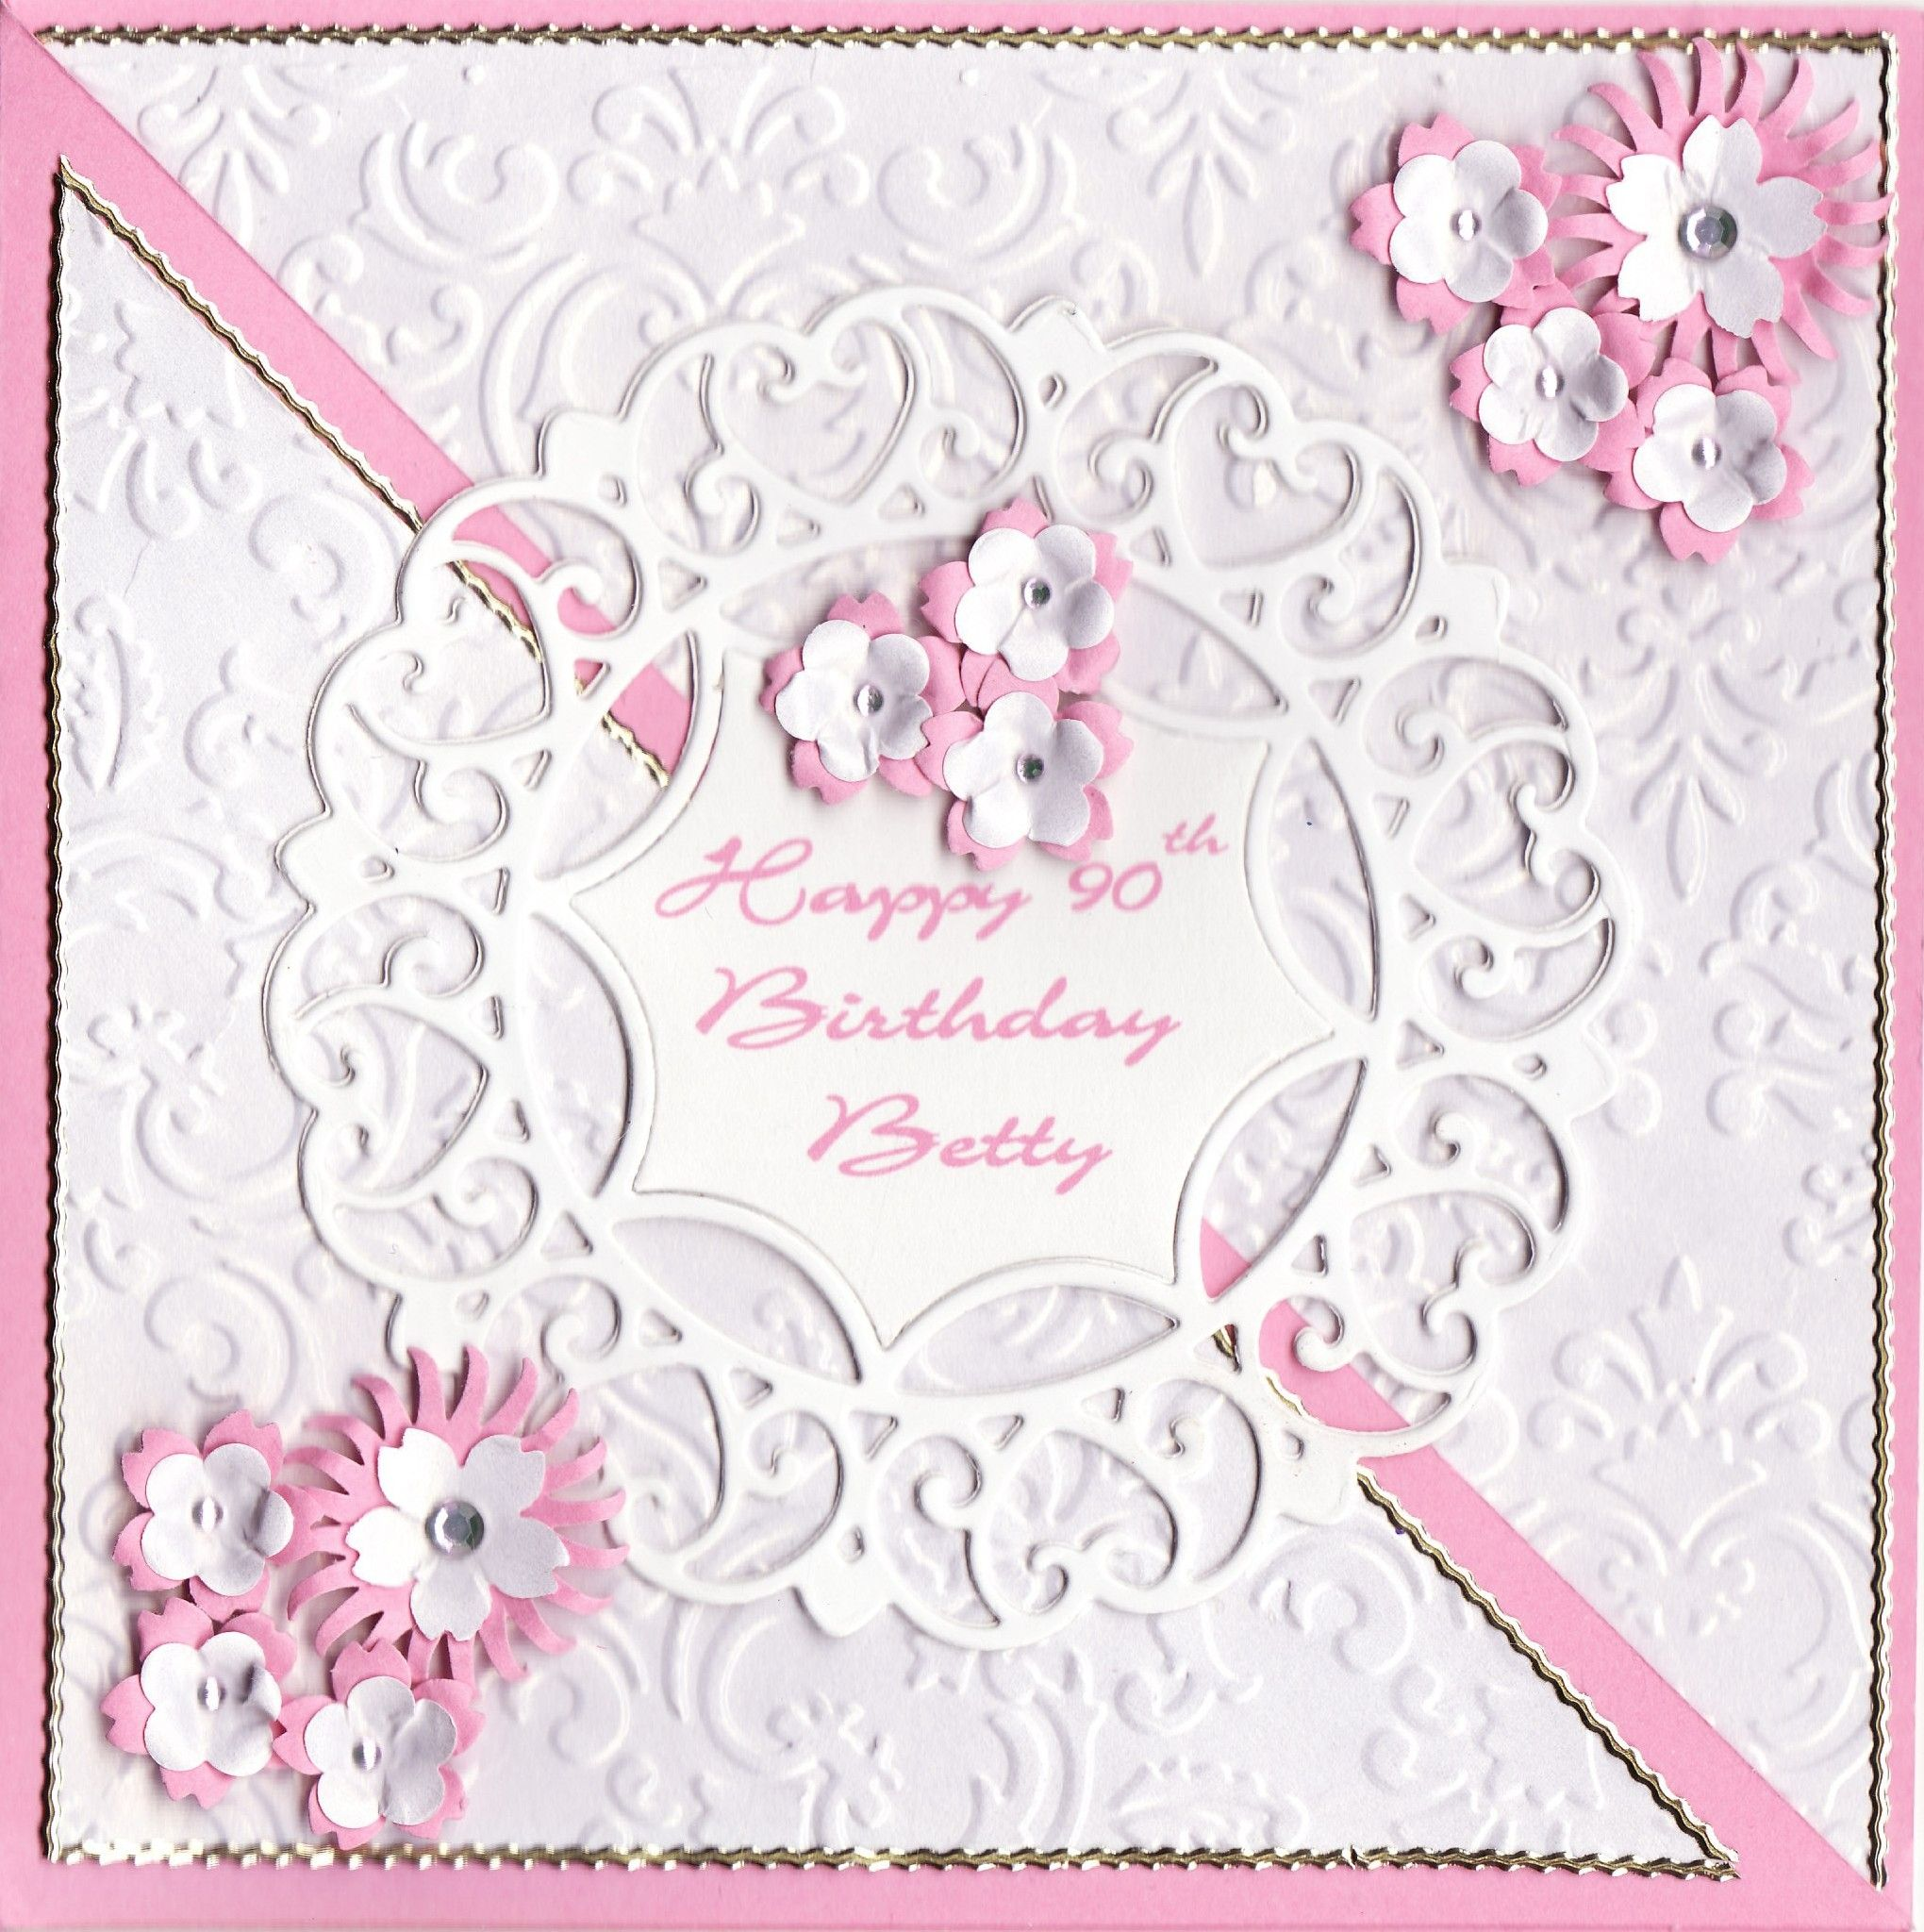 Happy 90th Birthday Betty Card greeting cards✏